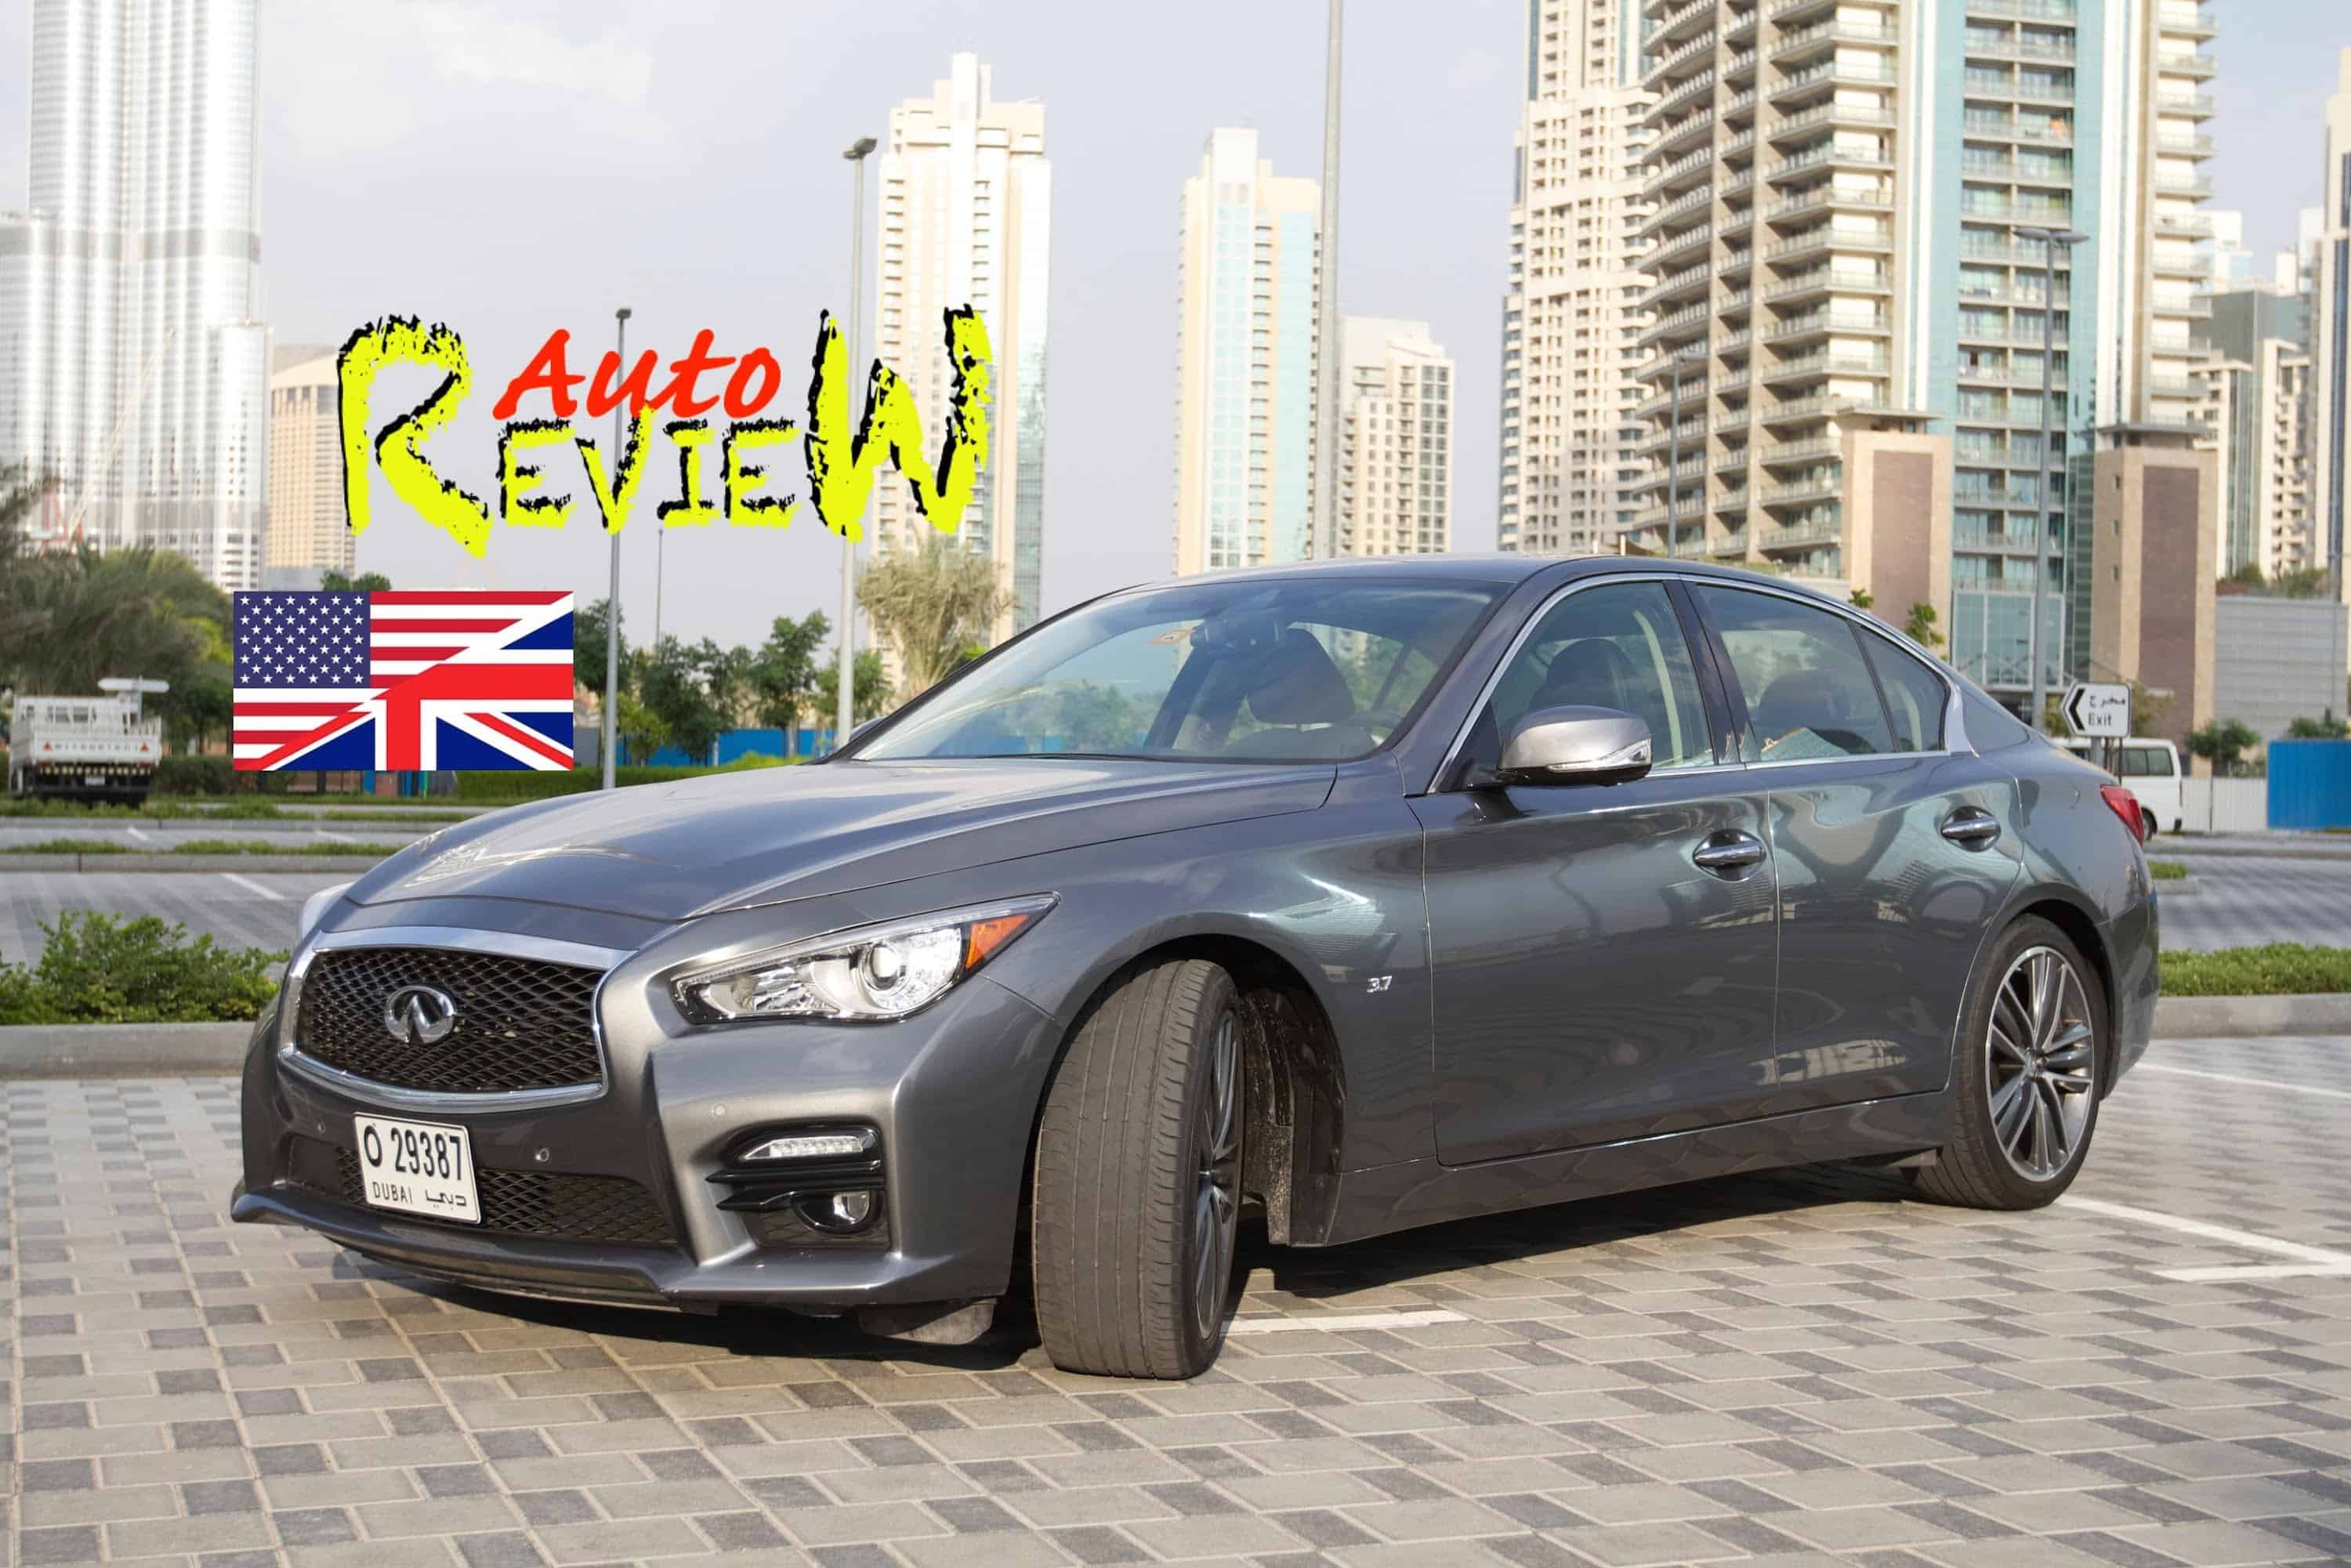 2015 Infiniti Q50 Car Review Video